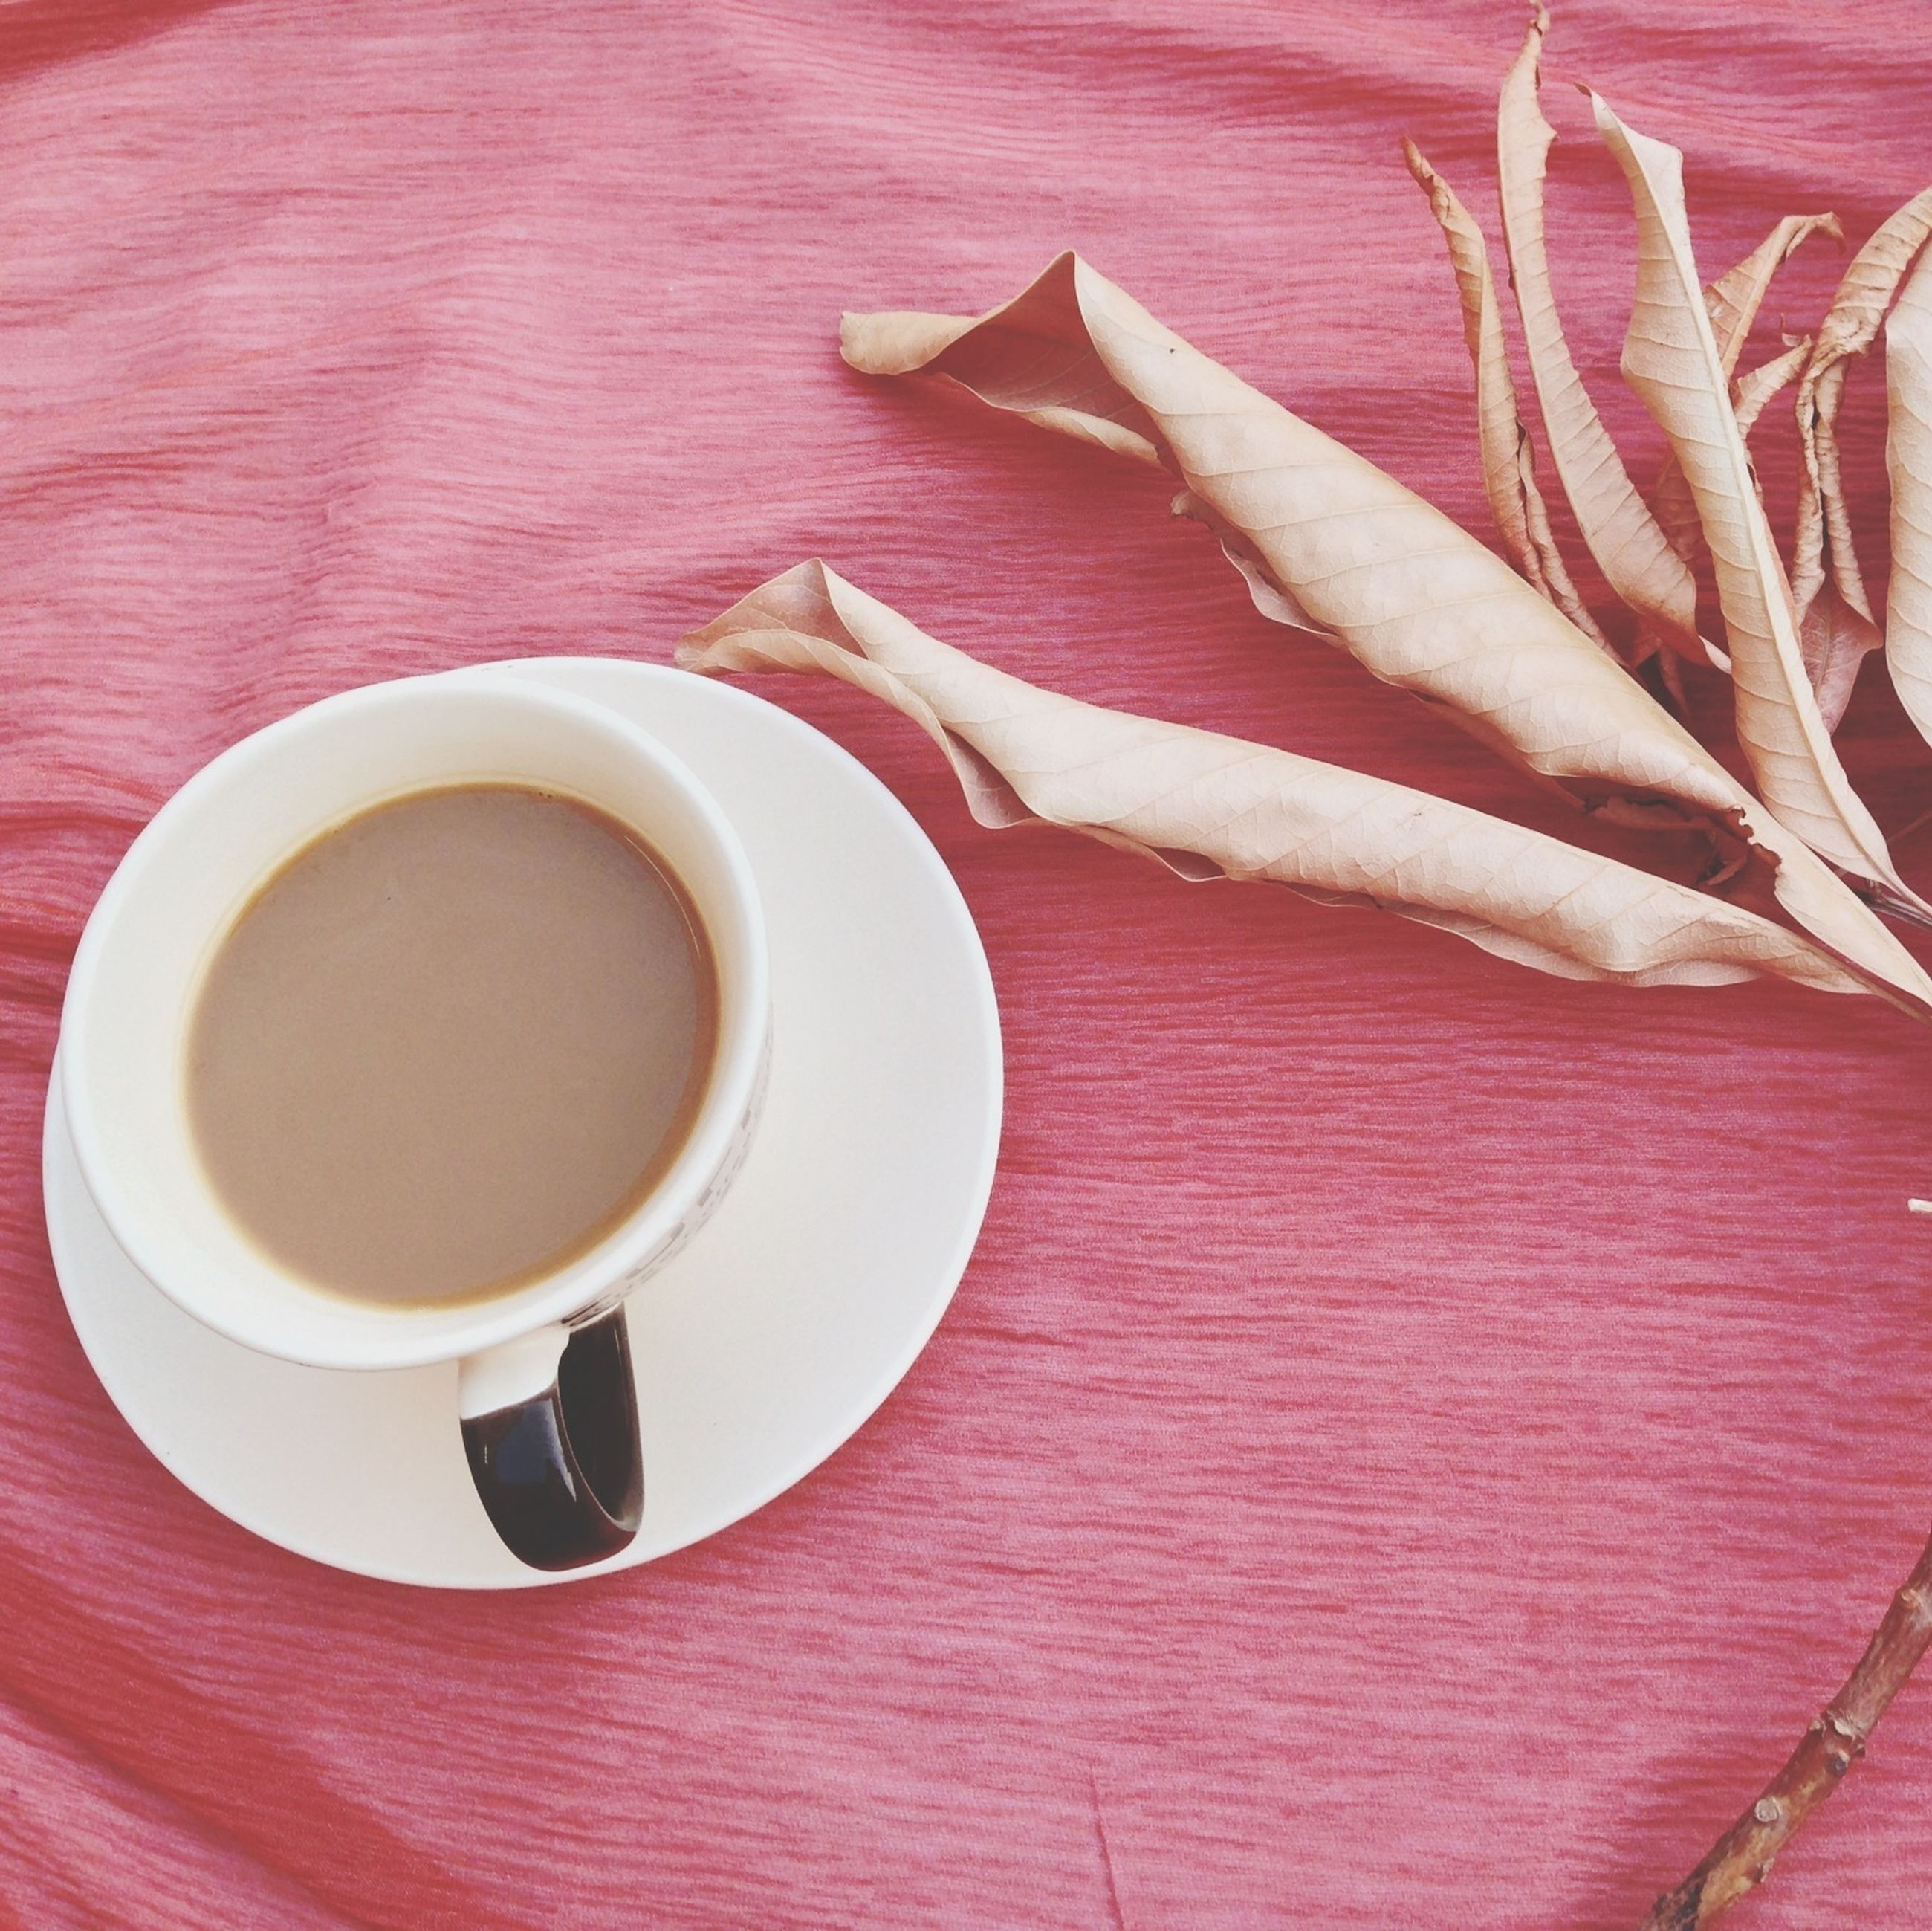 indoors, food and drink, table, freshness, coffee cup, red, still life, drink, refreshment, high angle view, coffee - drink, directly above, saucer, close-up, cup, no people, white color, spoon, plate, wood - material